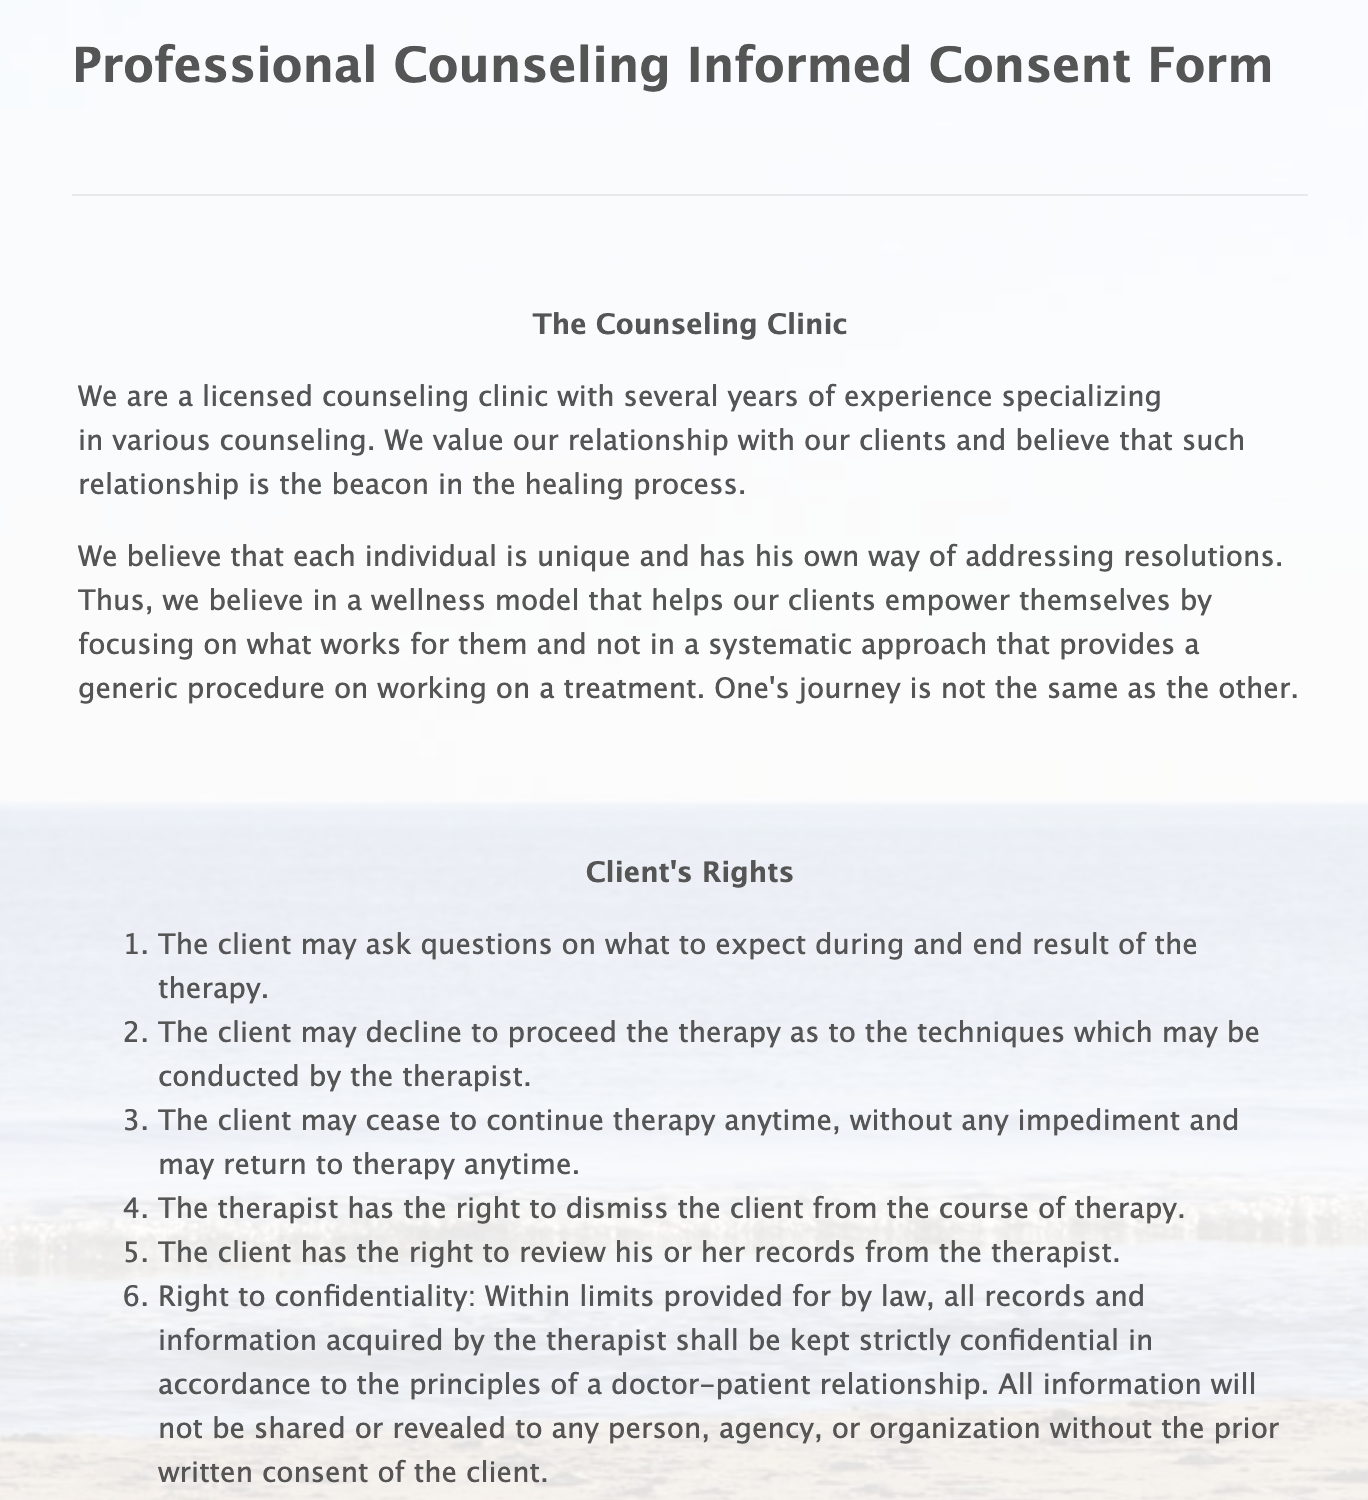 Professional Counseling Informed Consent Form